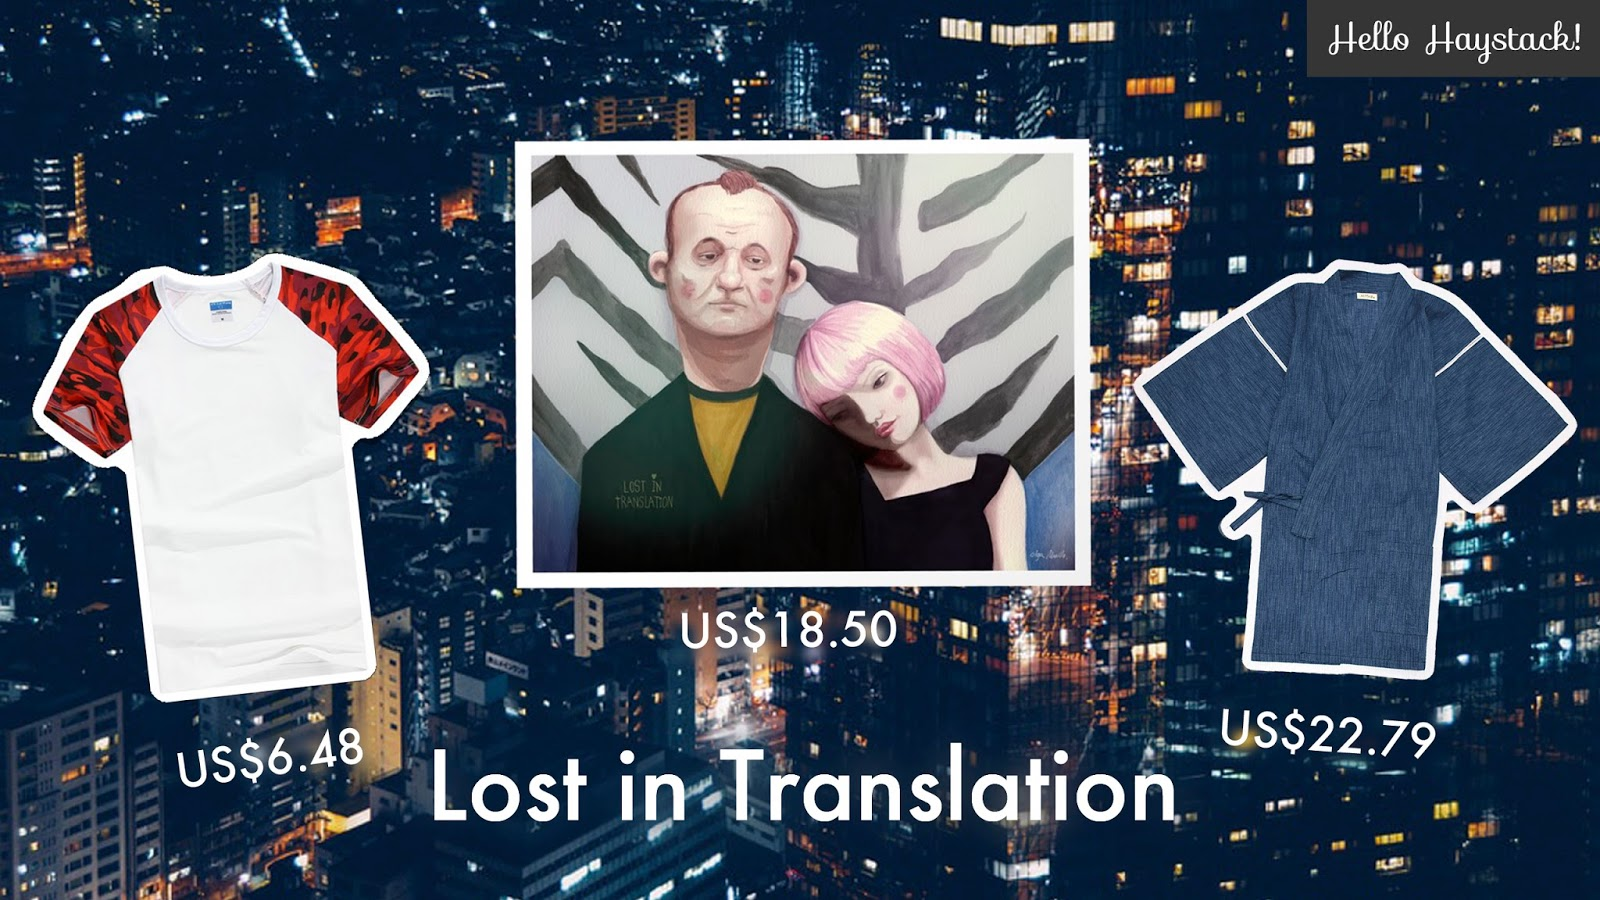 In Lost Translations Memorable Karaoke Scene Murrays Character Sings Plaintively To Scarlett Johansson High Up Above Night Time Tokyo While Wearing